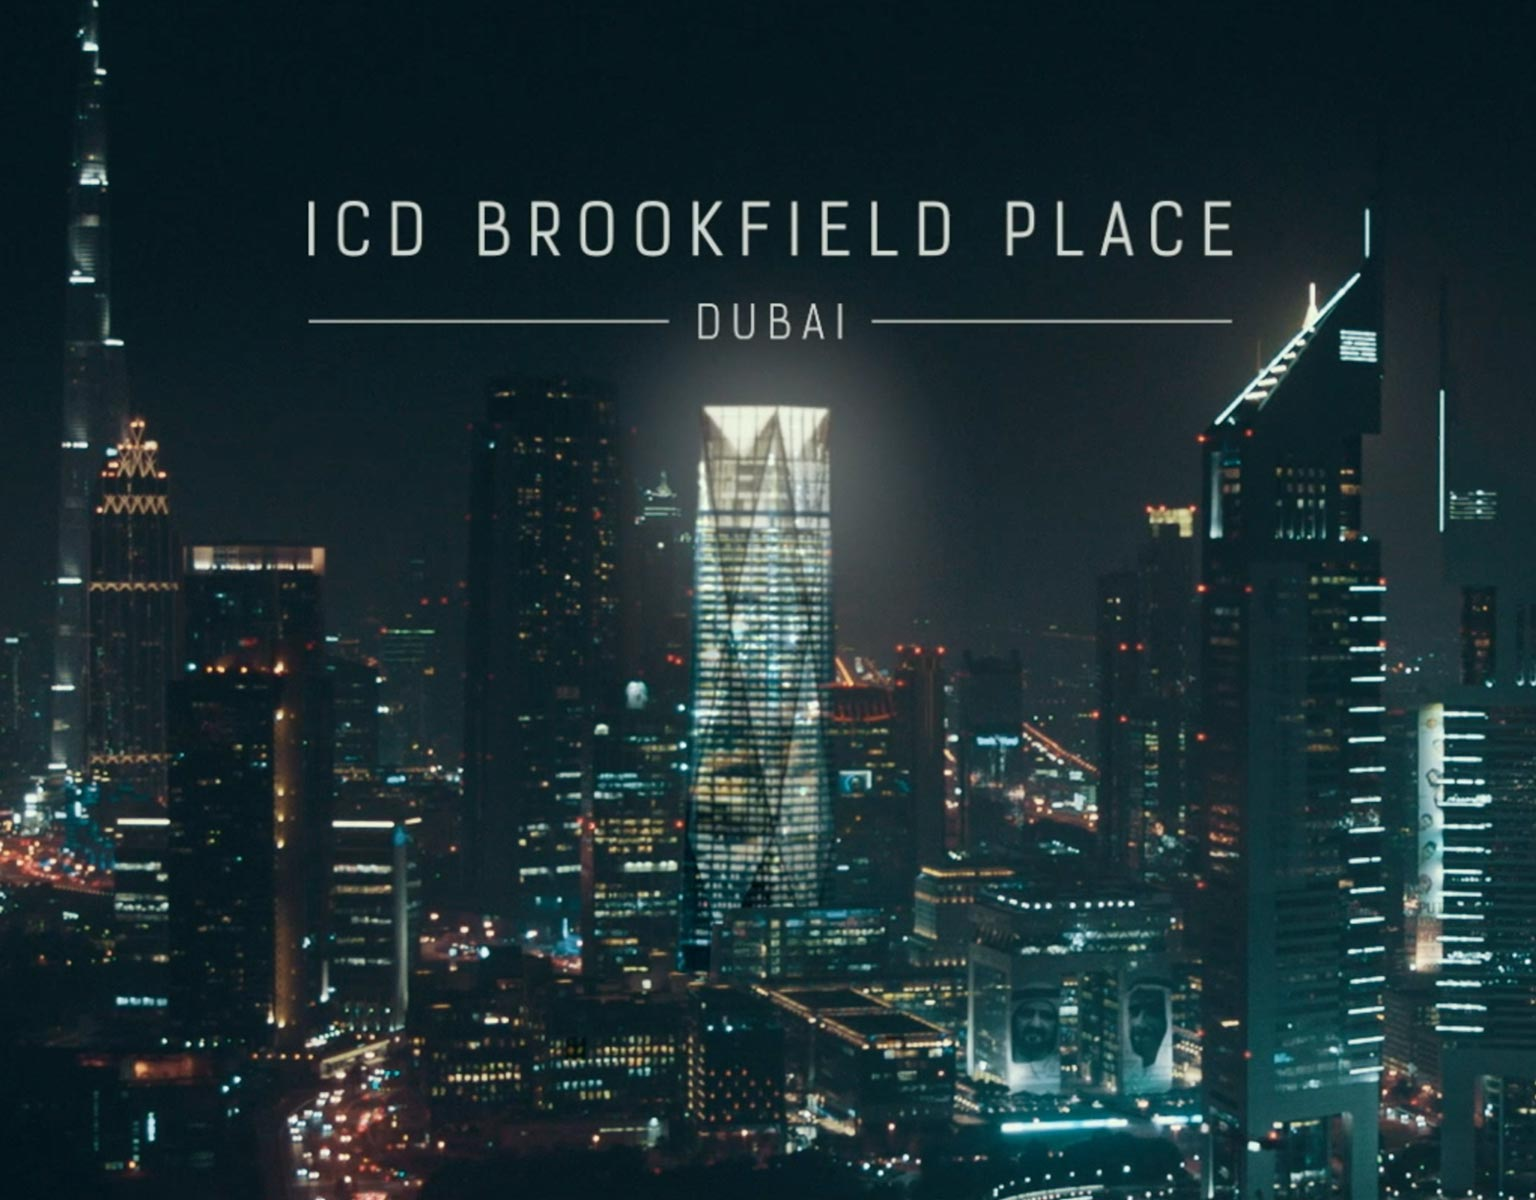 ICD Brookfield Place Dubai - video